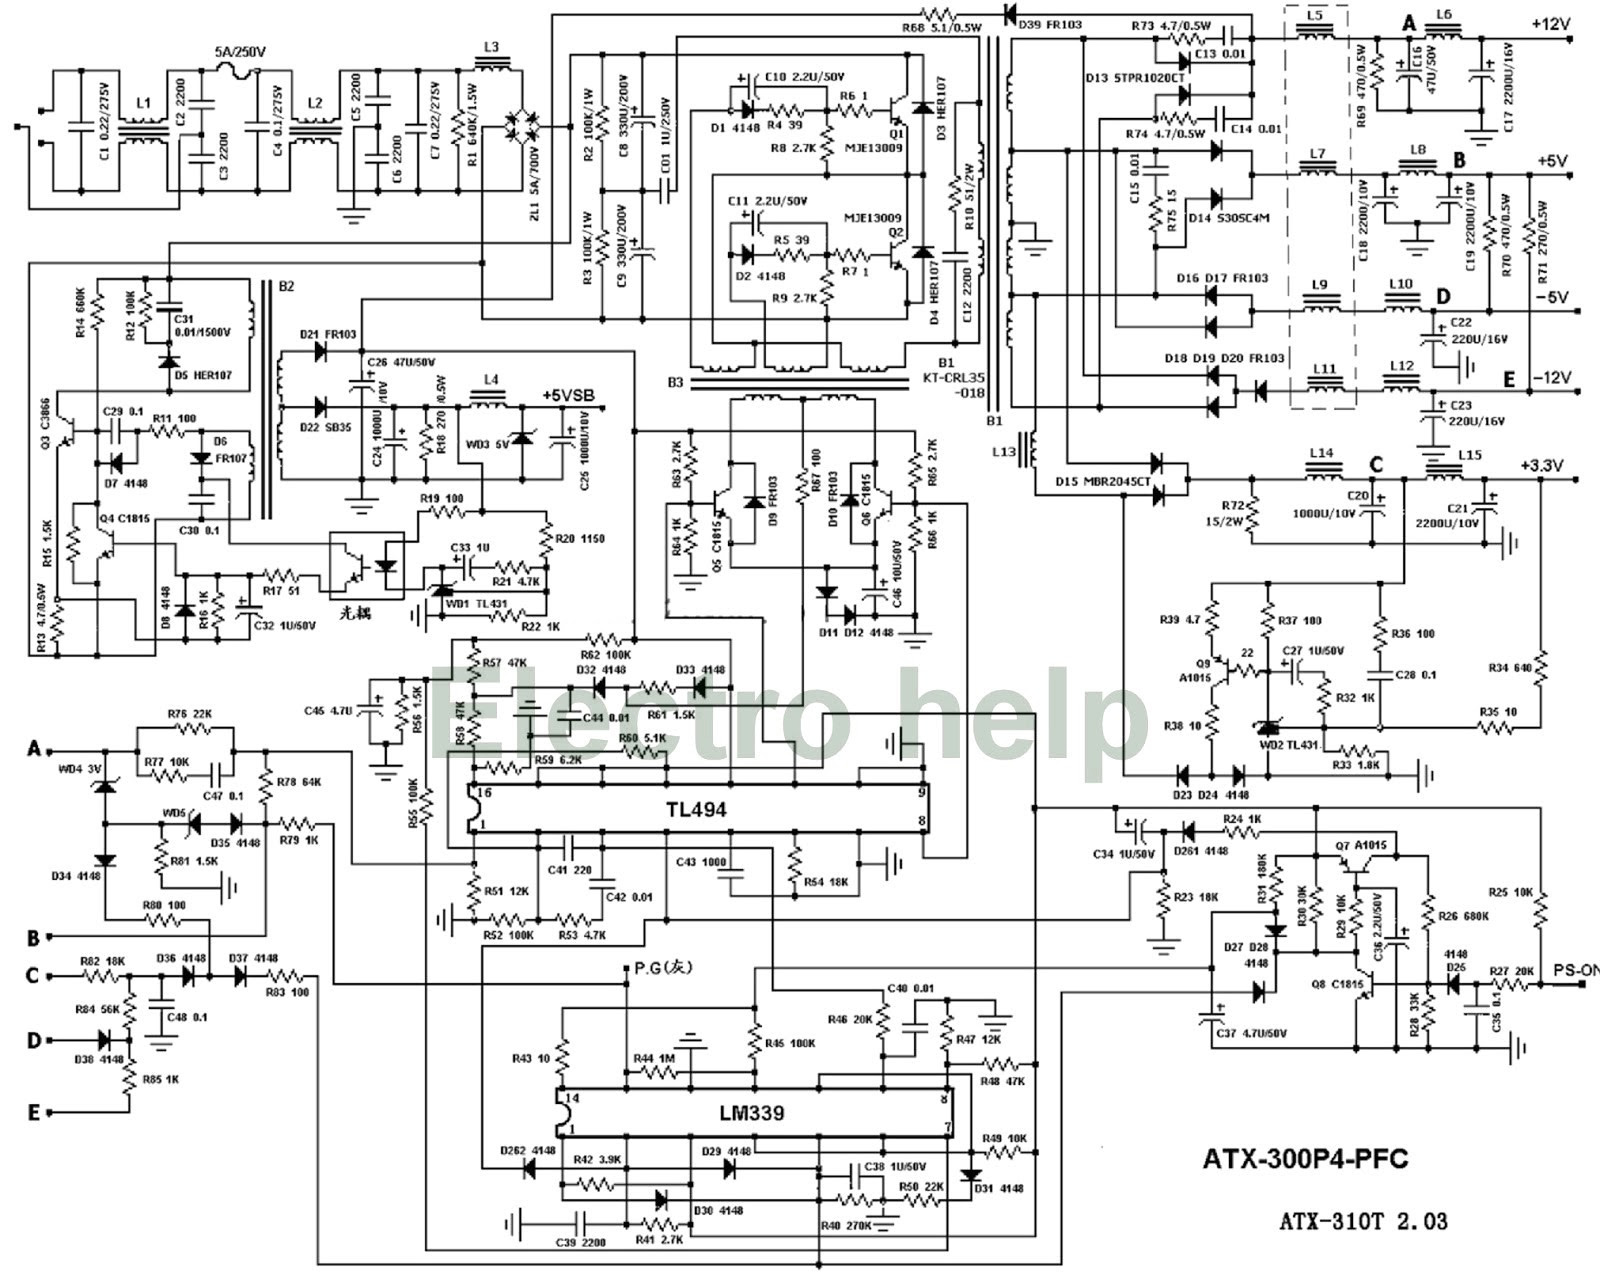 hight resolution of wiring dia 27hp kohler schematic diagram 18 hp magnum kohler engines